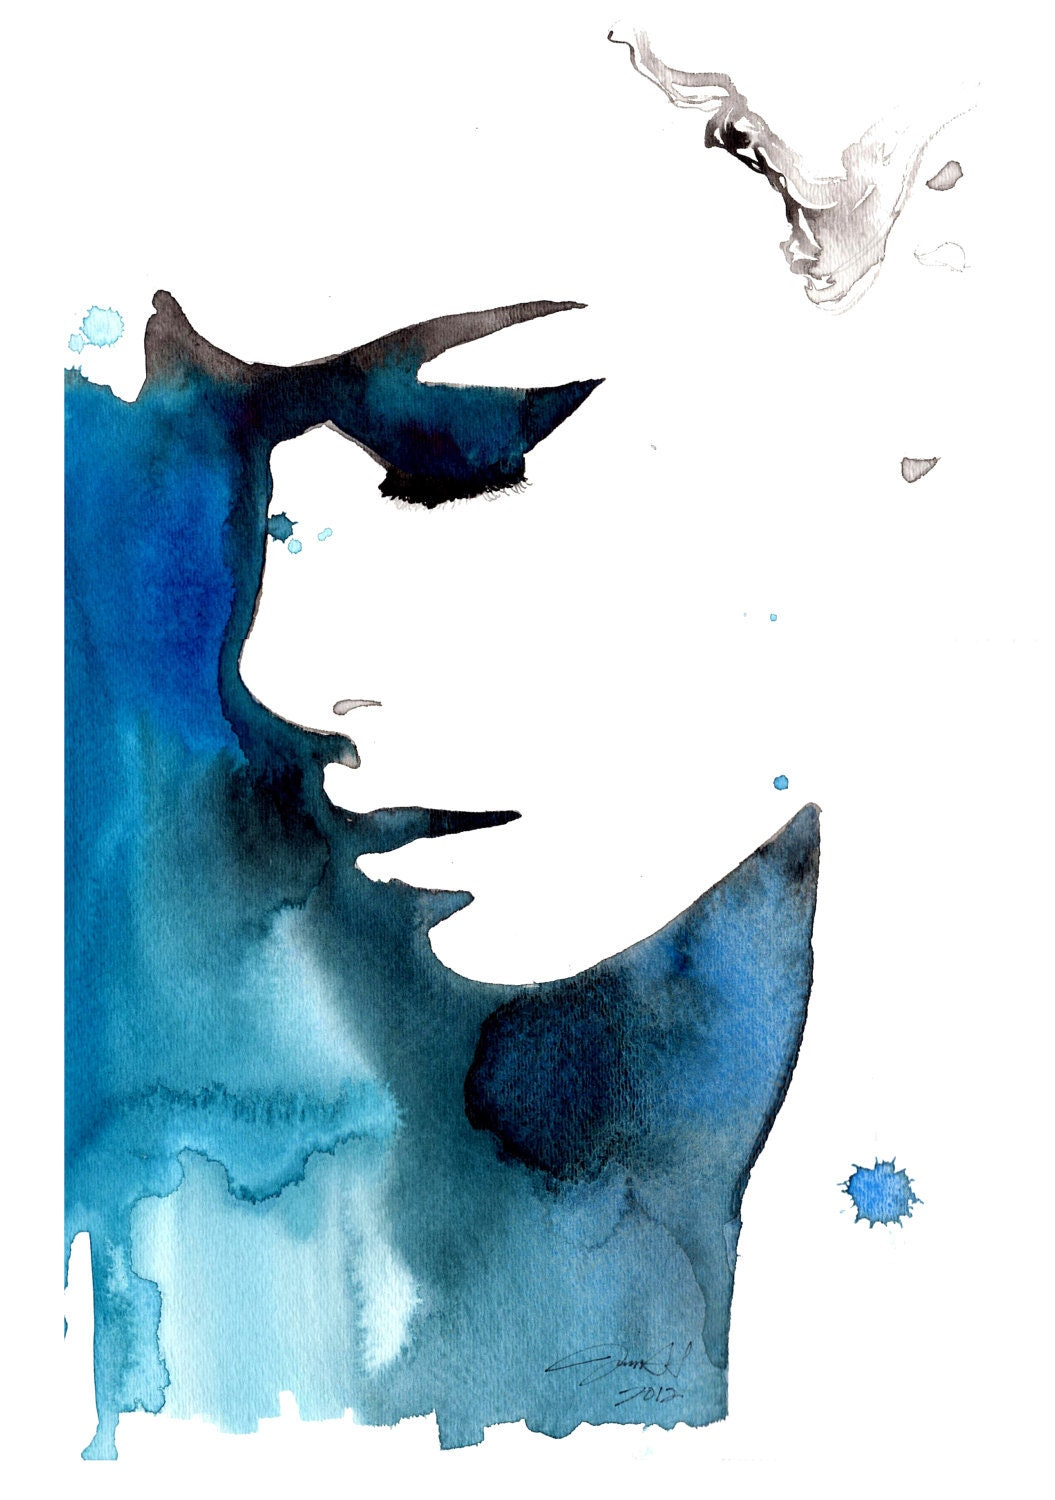 Print from original watercolor fashion illustration by Jessica